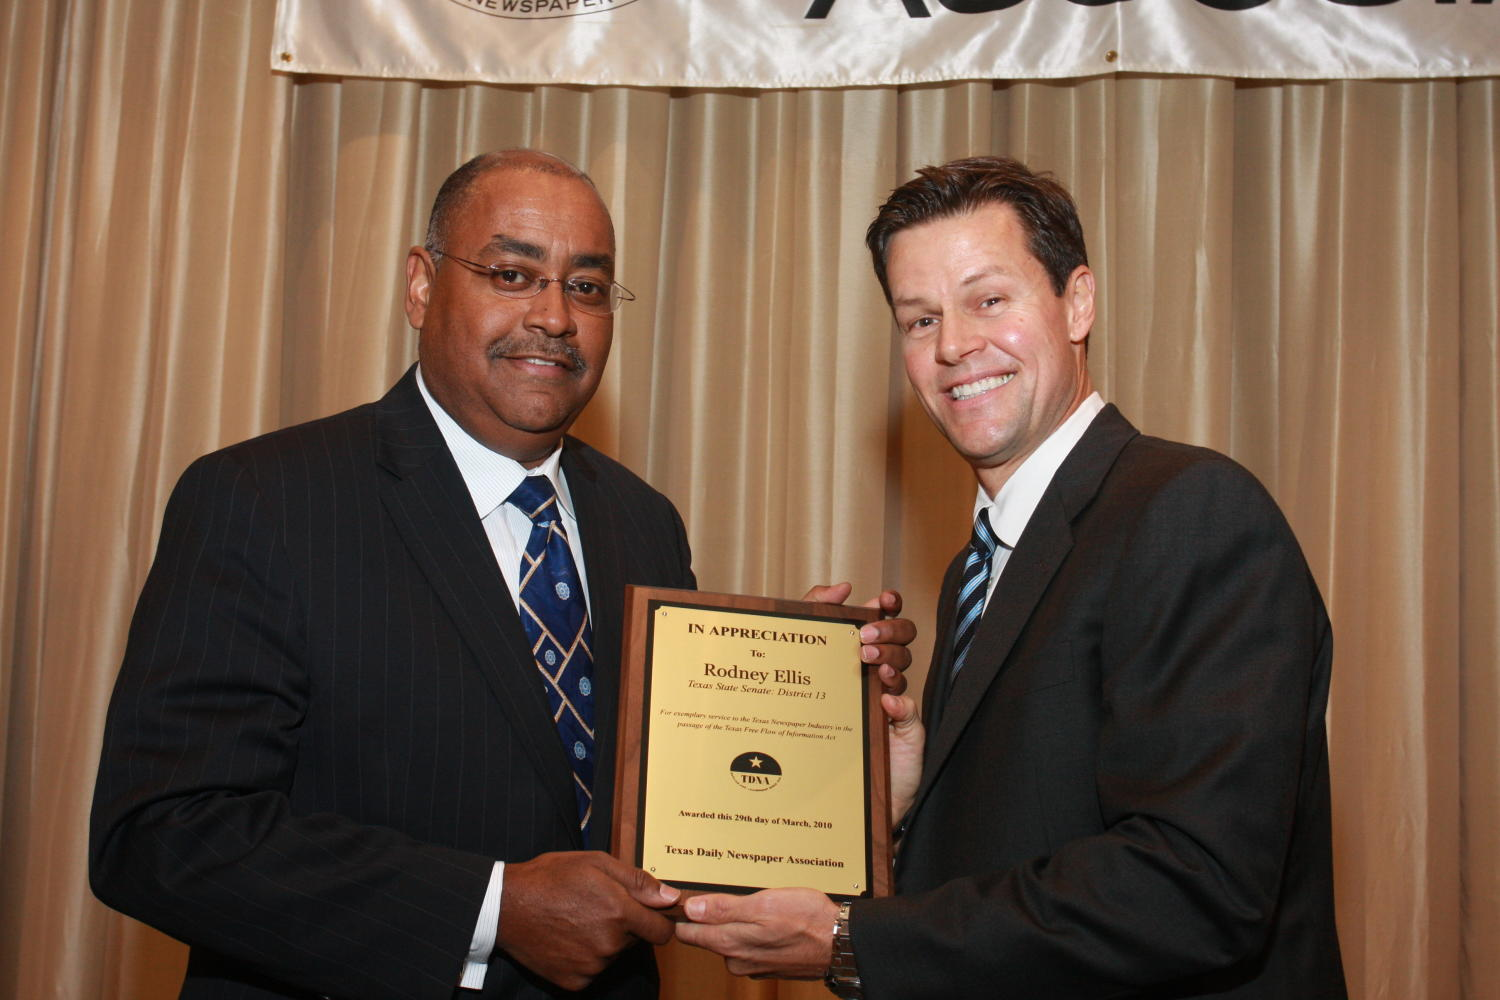 "[Fred K. Hartman presenting Rodney Ellis with an award], Photograph of Fred K. Hartman (right) presenting Rodney Ellis (left) with an award during the 2010 Texas Daily Newspaper Association annual meeting held in Houston, Texas. The award reads, ""In Appreciation to: Rodney Ellis. Texas State Senate: District 13."","